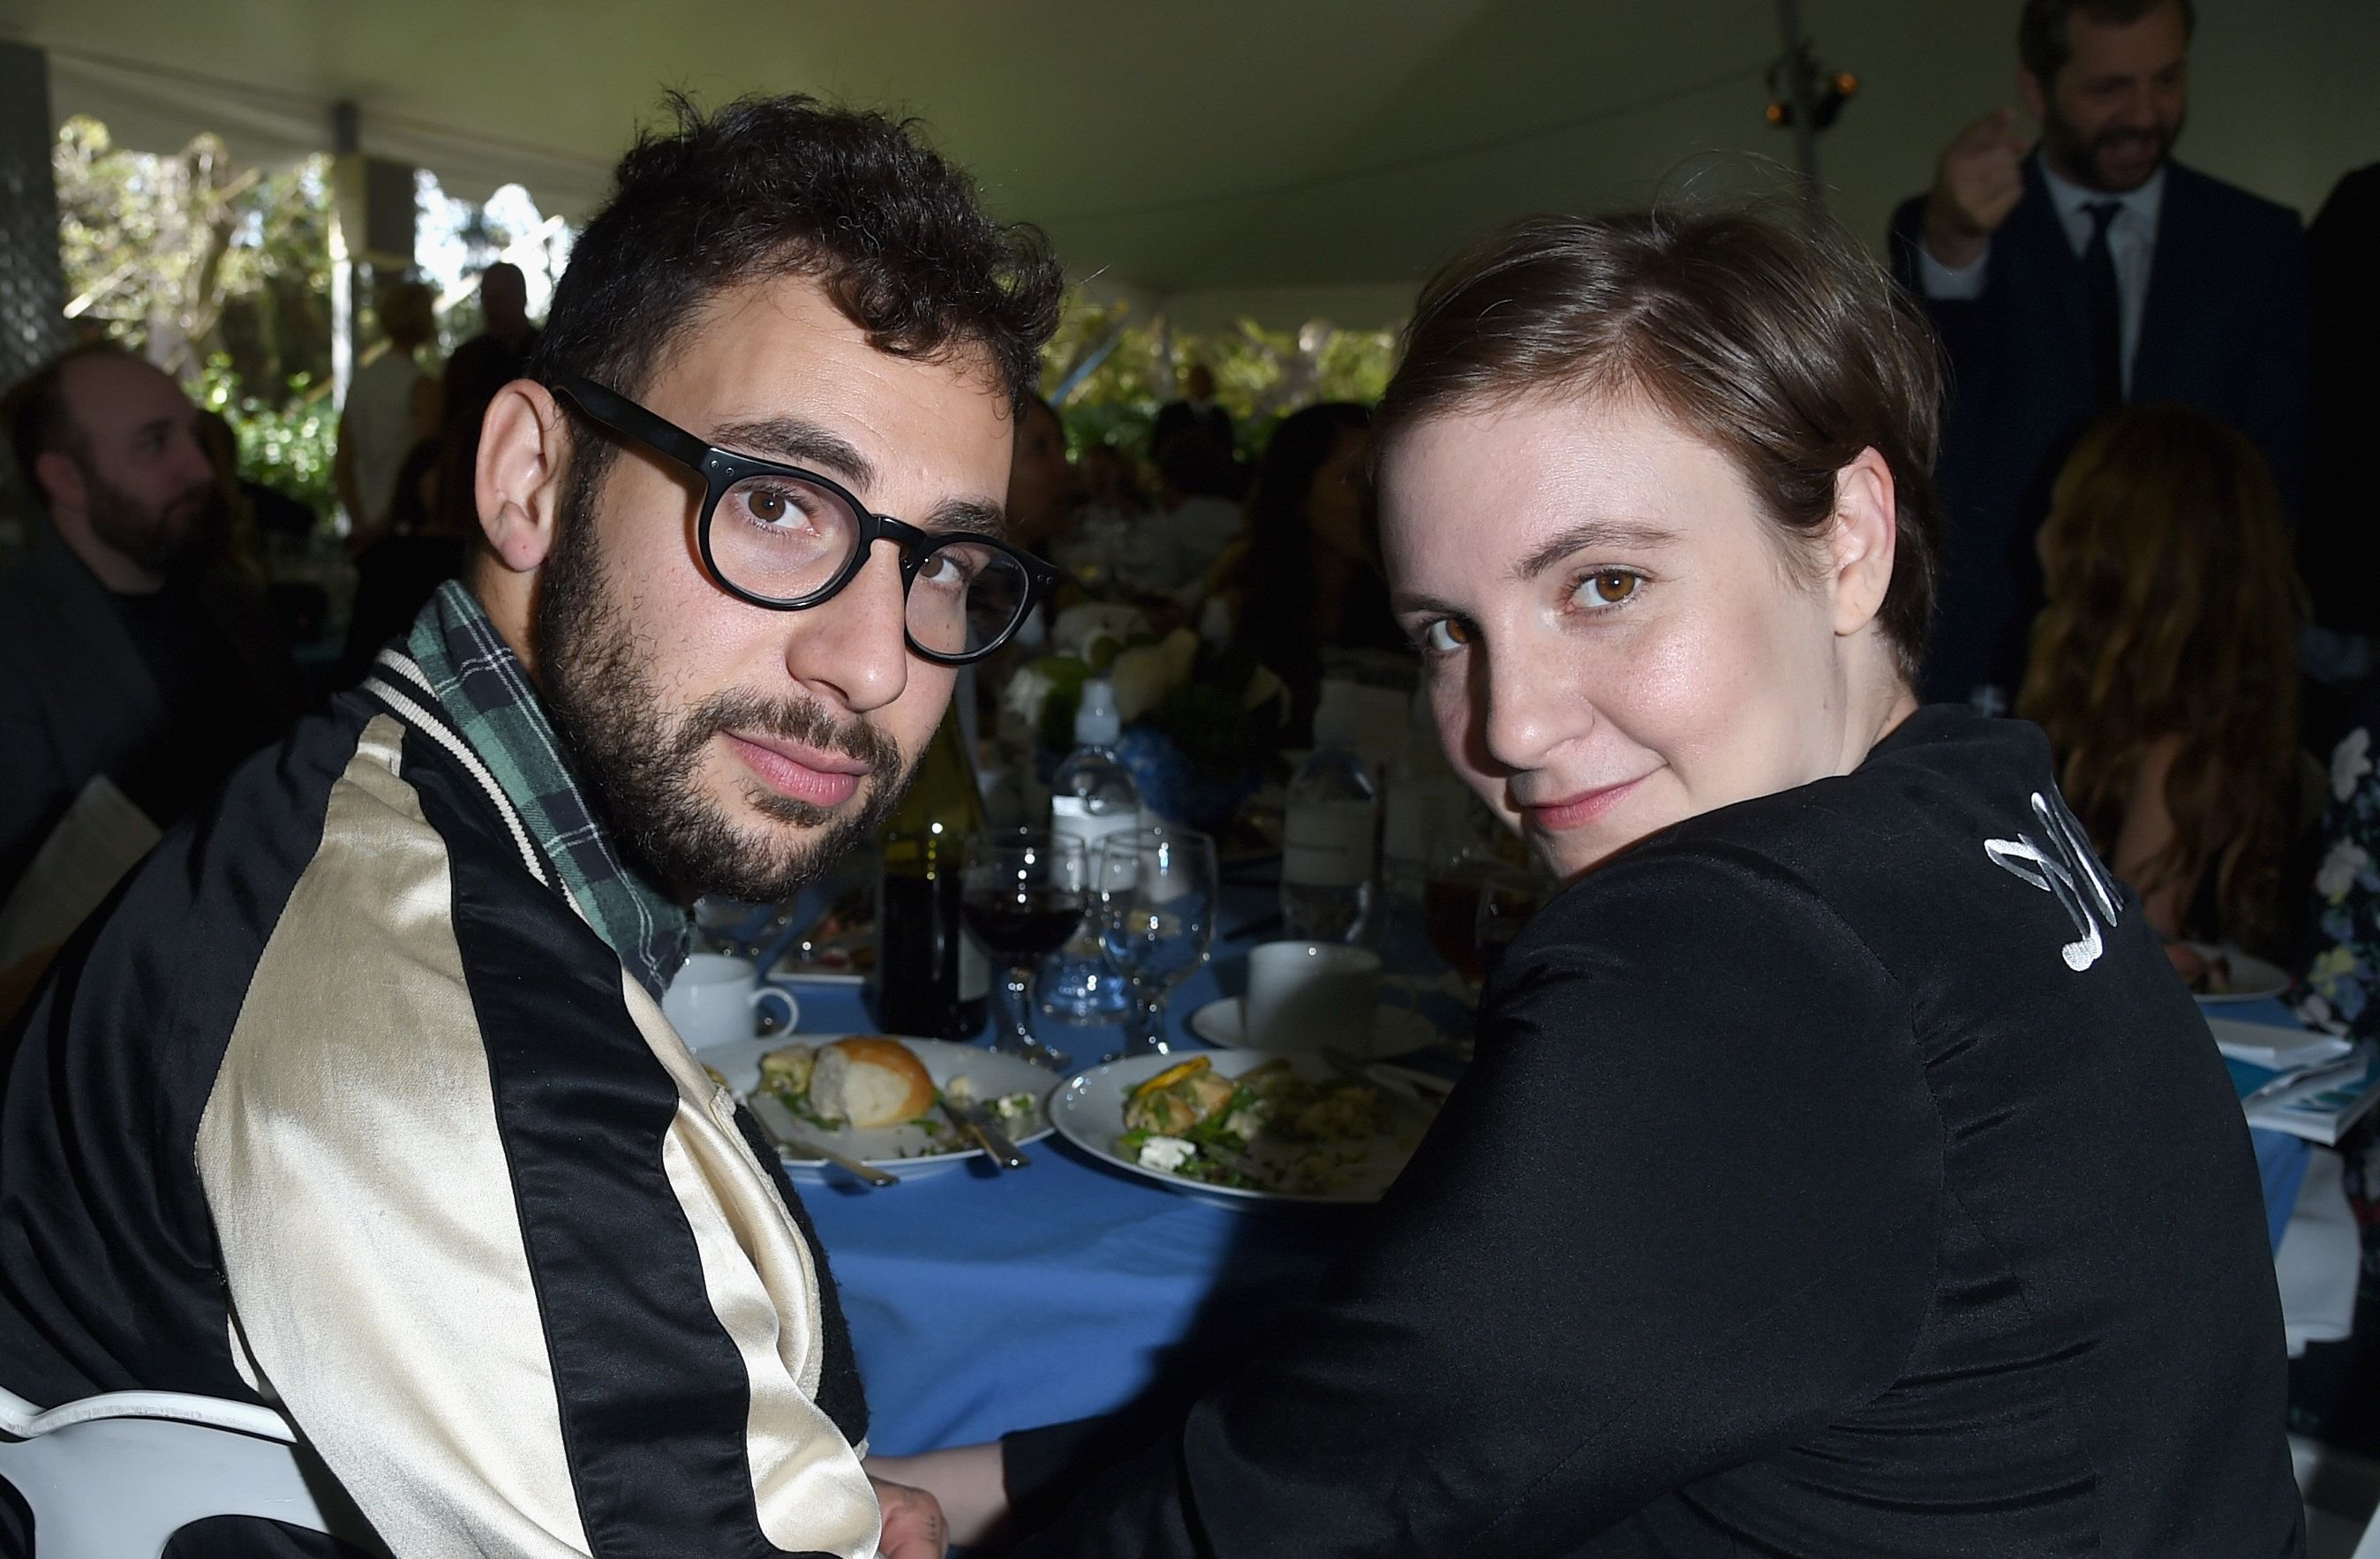 BEVERLY HILLS, CA - OCTOBER 04:  Musician Jack Antonoff and actress/writer Lena Dunham attend The Rape Foundation's annual brunch at Greenacres, The Private Estate of Ron Burkle on October 4, 2015 in Beverly Hills, California.  (Photo by Jason Merritt/Getty Images for The Rape Foundation)